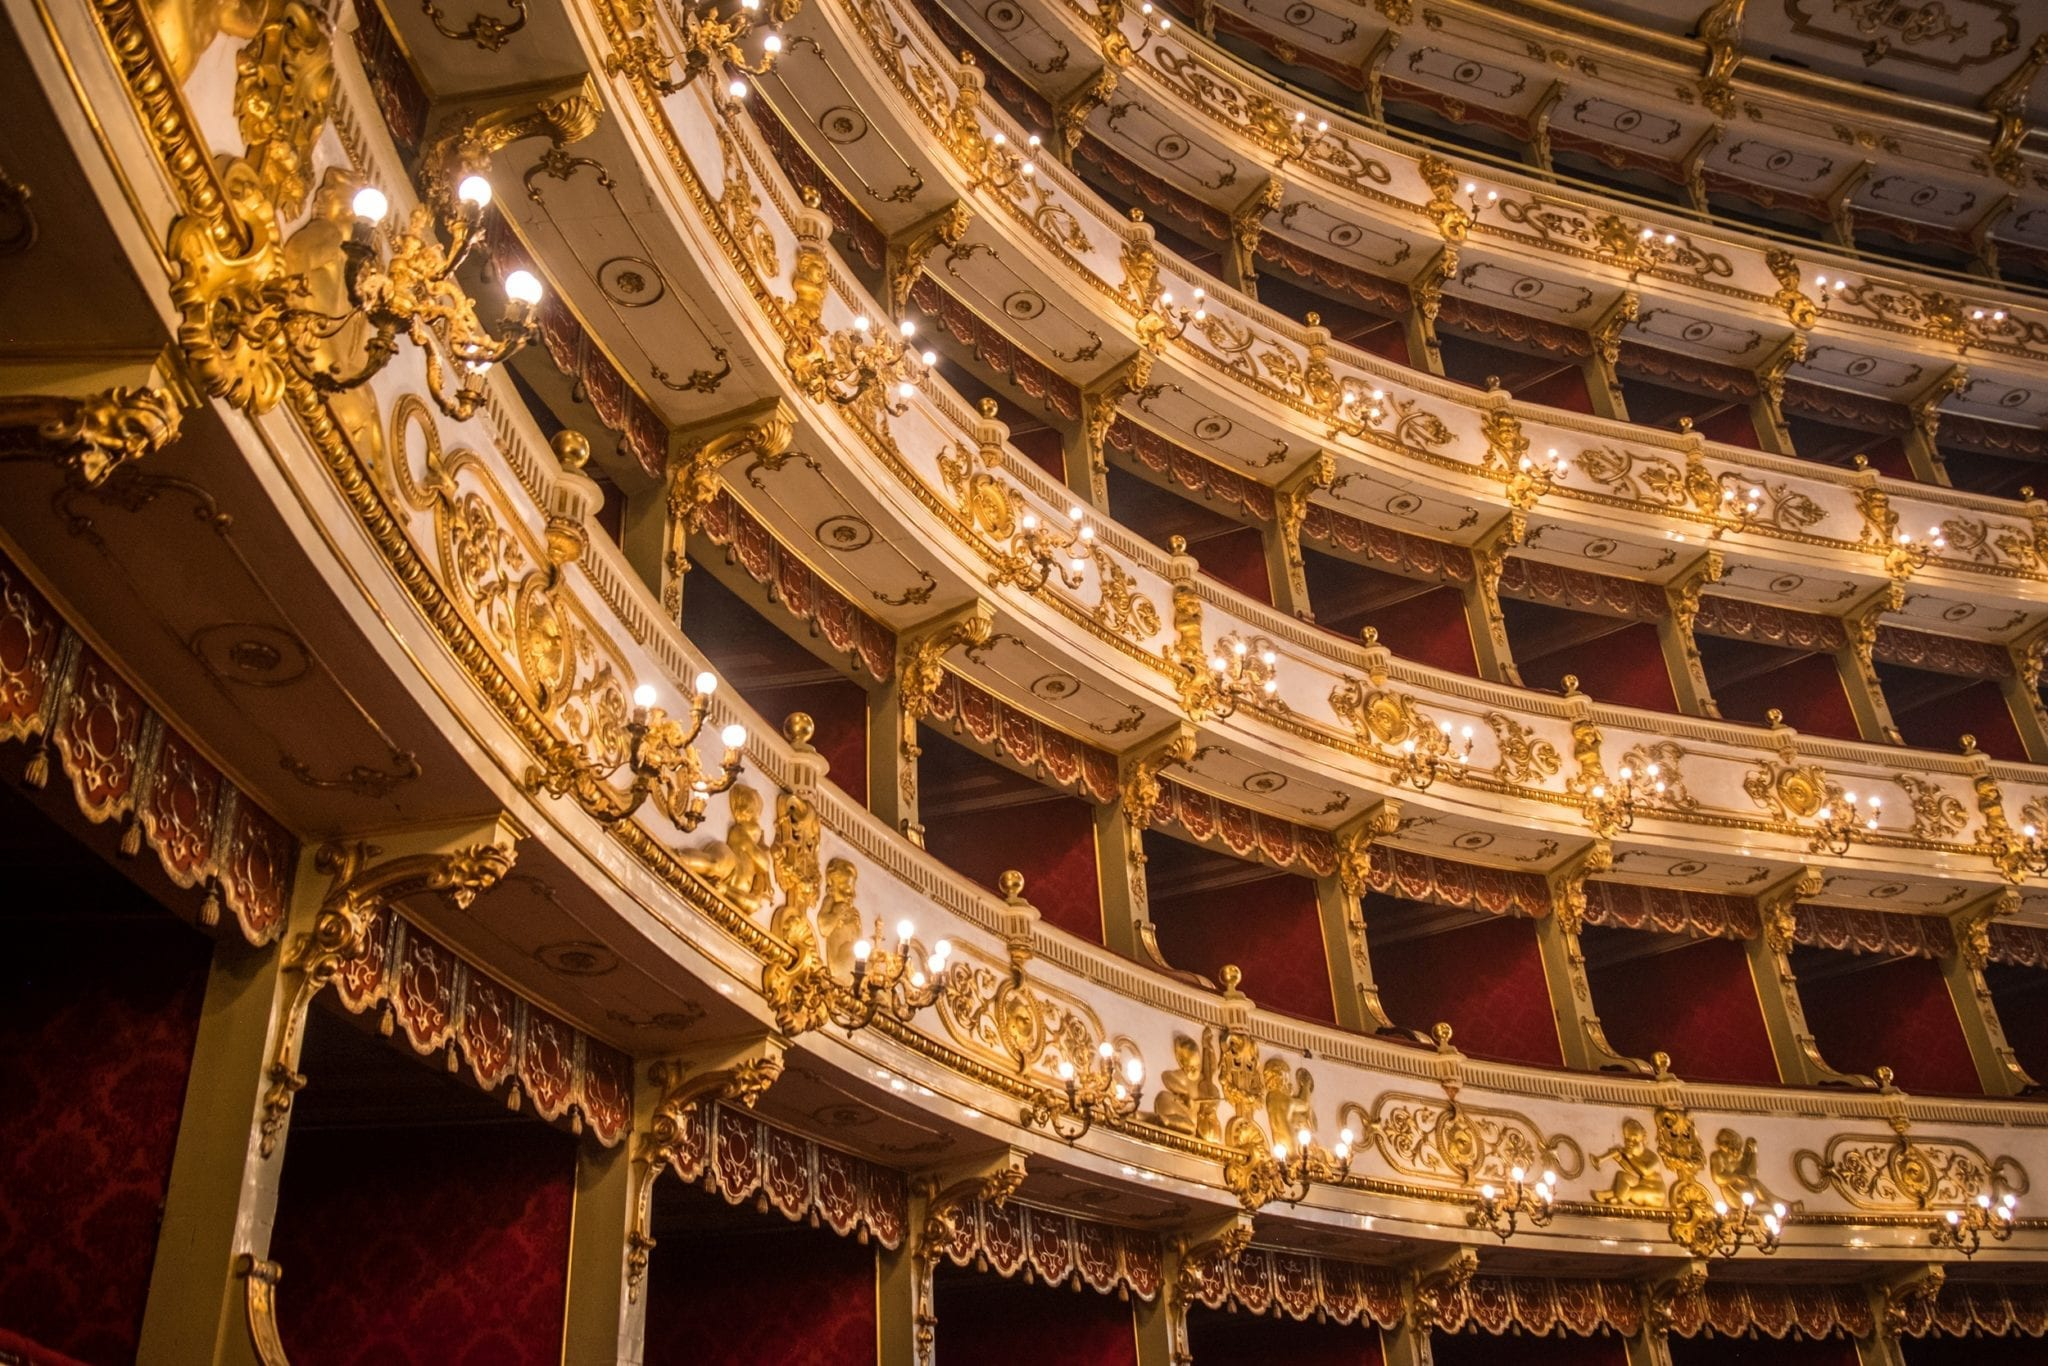 The ornate theater with stacked rows of gold-and-white balconies.